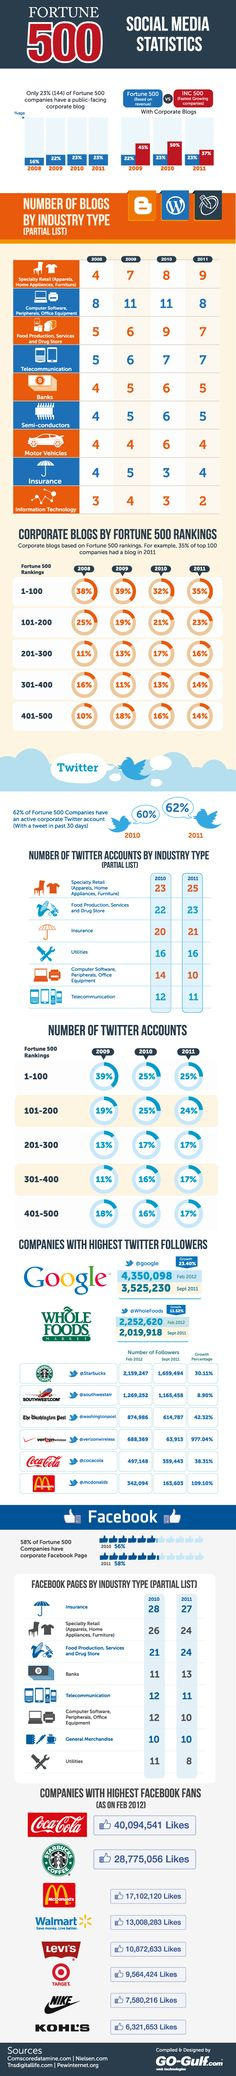 Fortune 500 Social Media Statistics 2013 – an infographic